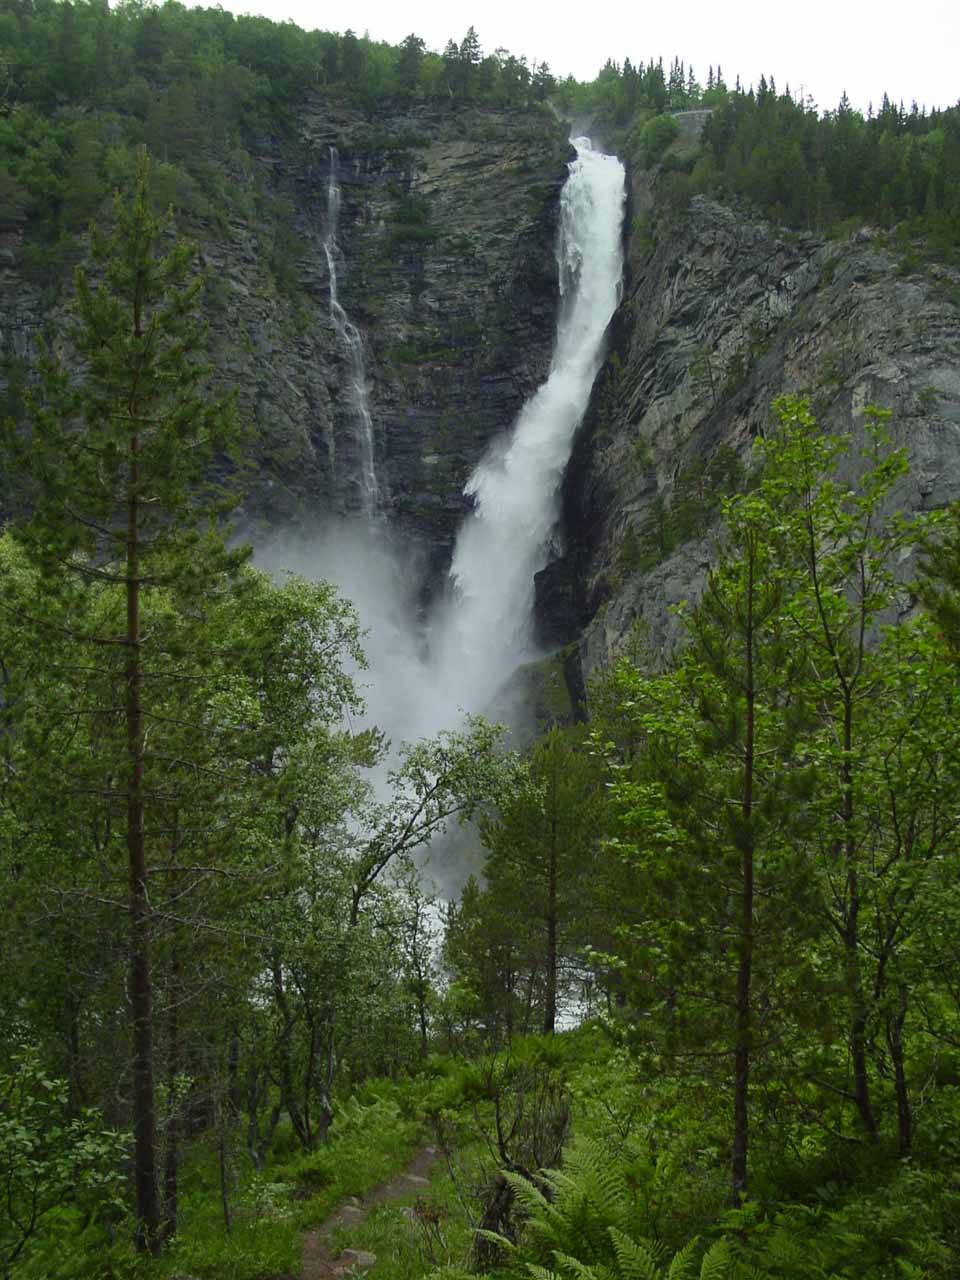 After our stint through Sunndalen and its numerous waterfalls, we made another detour into the hamlet of Åmotan where we saw a trio of giant waterfalls, including Svøufossen shown here